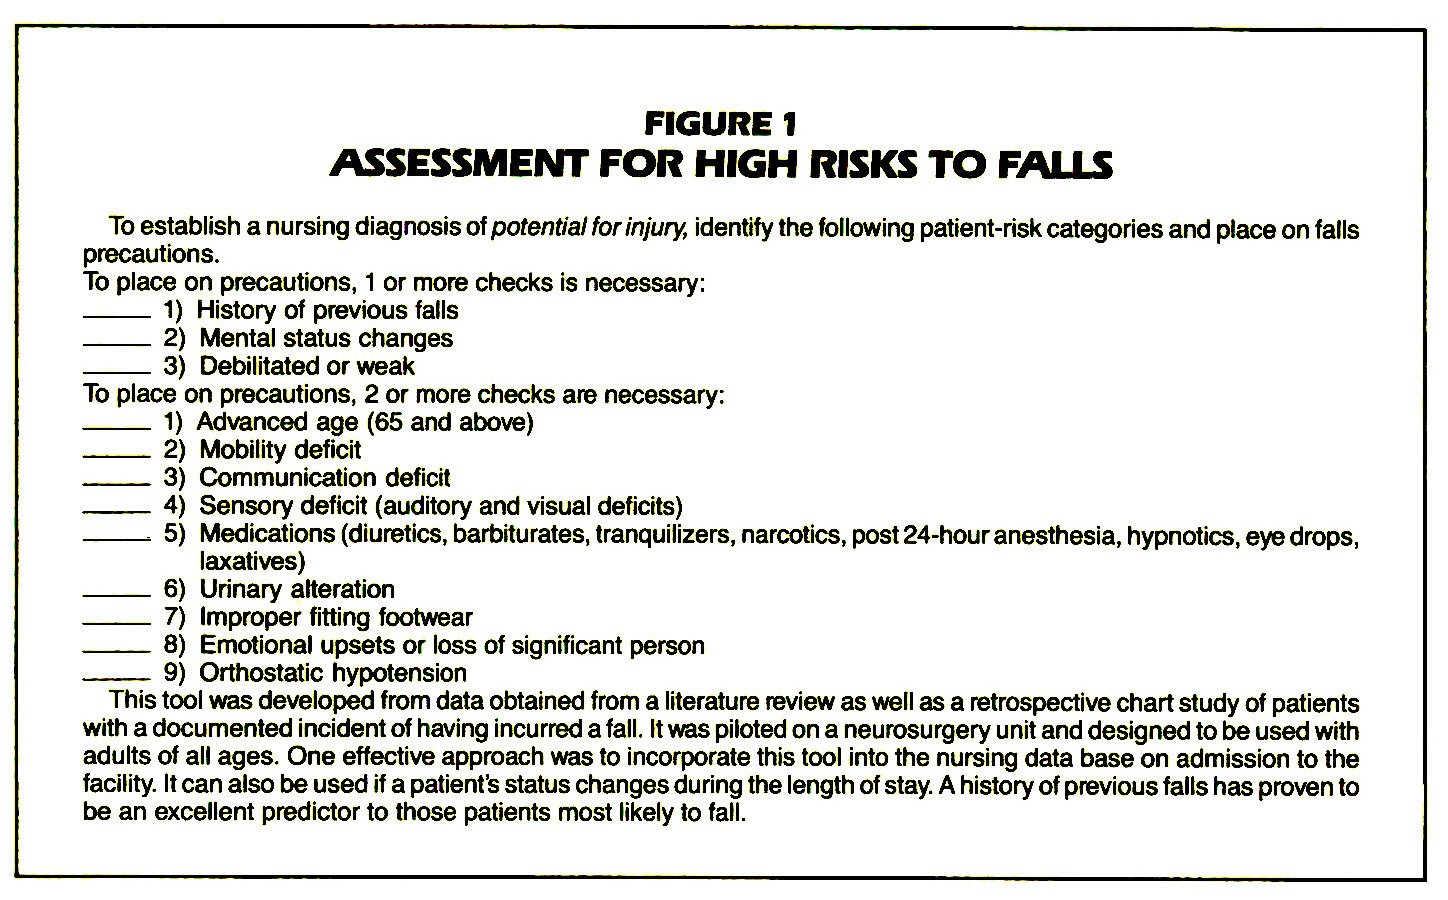 FIGURE 1ASSESSMENT FOR HIGH RISKS TO FALLS